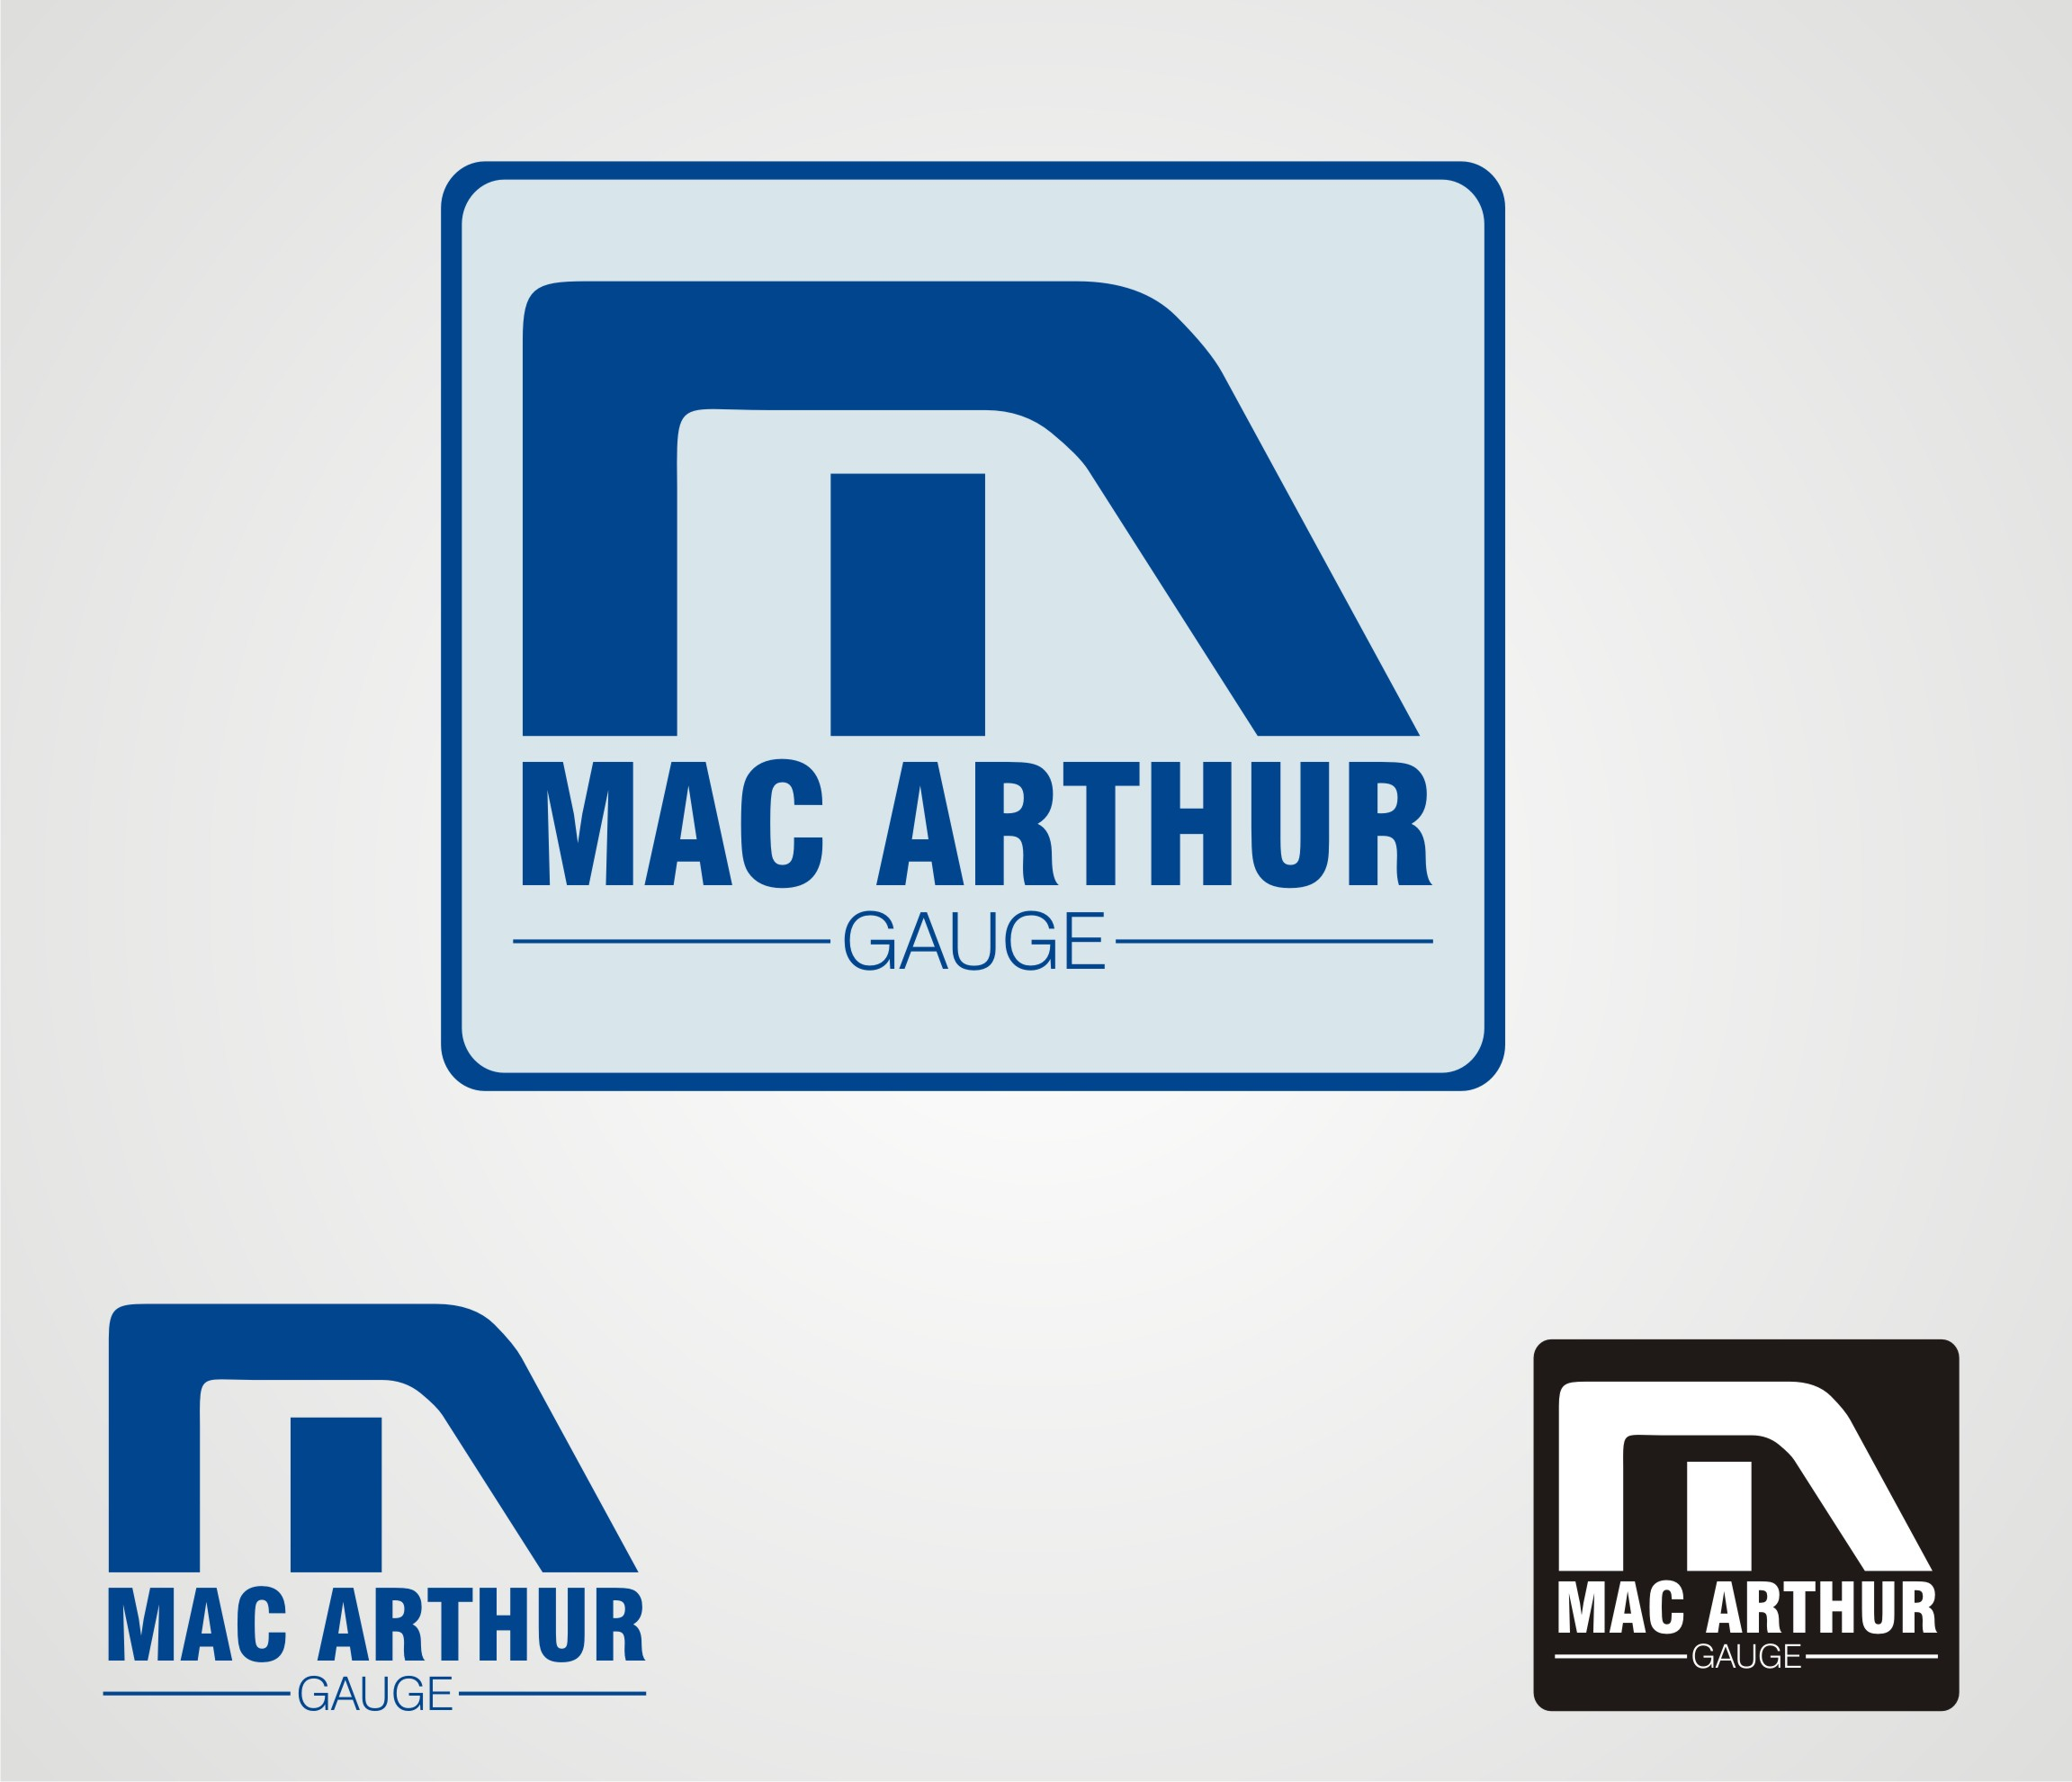 Logo Design by Anuj Verma - Entry No. 65 in the Logo Design Contest Fun Logo Design for MacArthur Gauge.